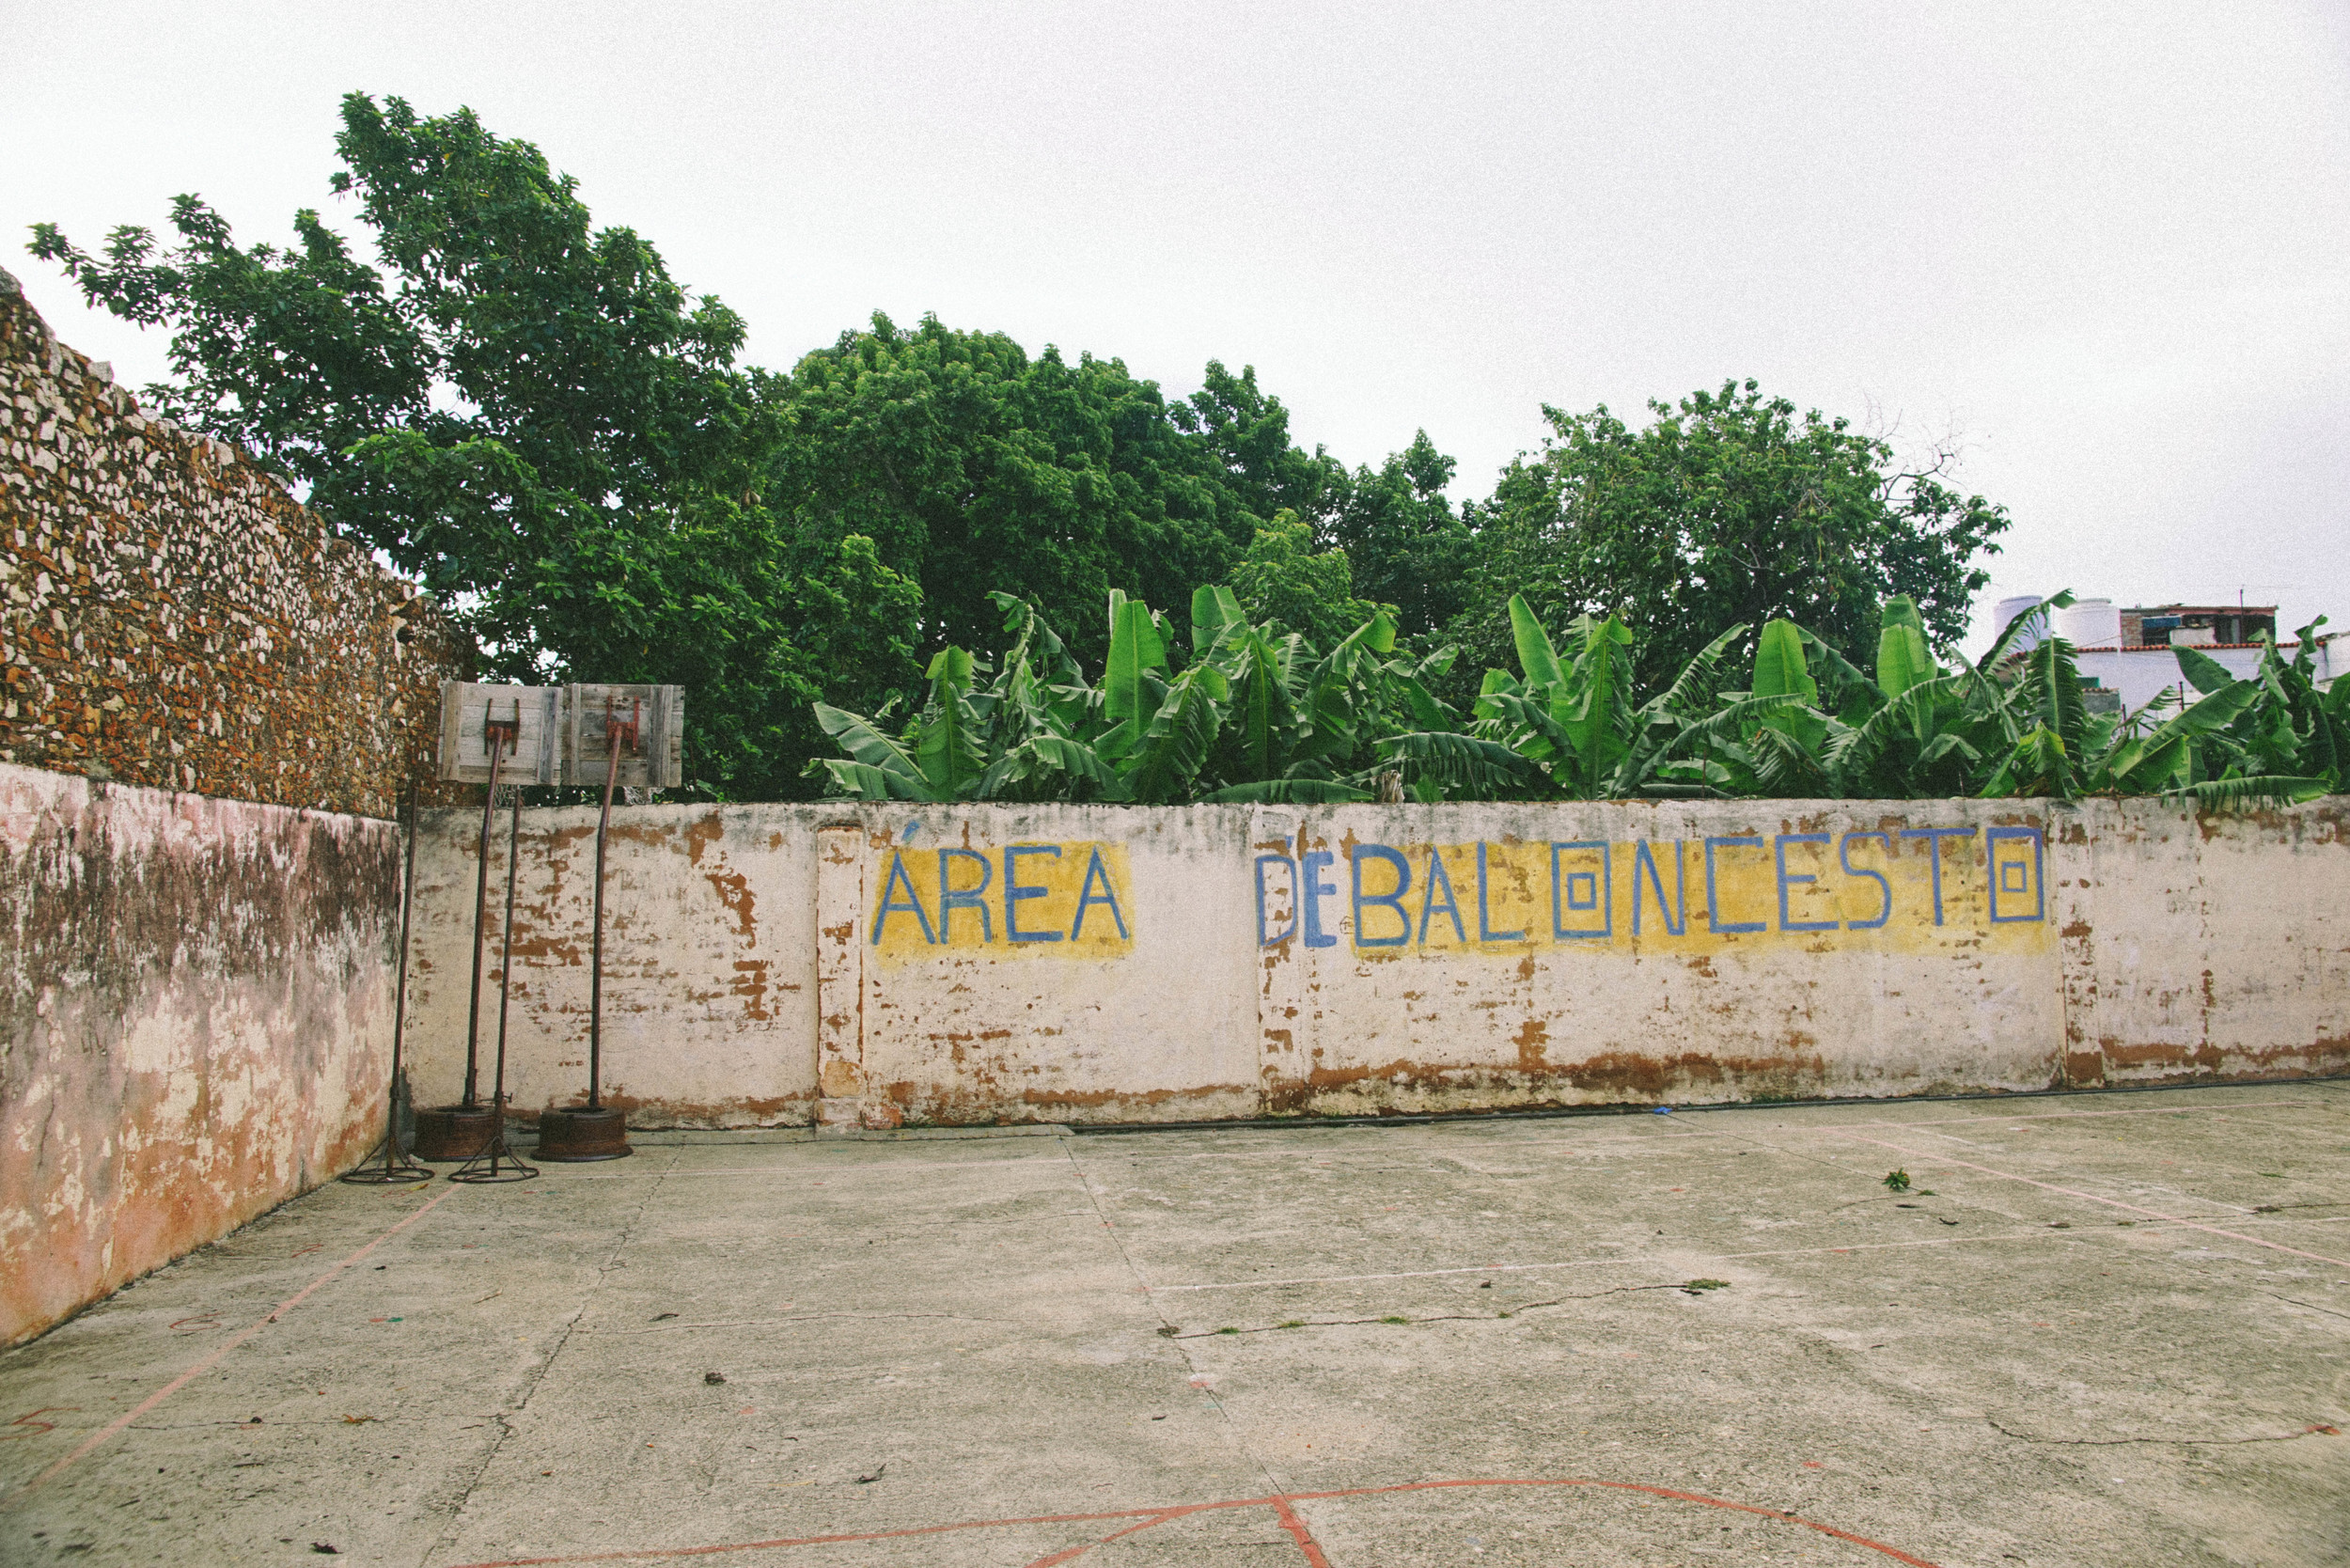 A primary school sports court in Trinidad. The facilities may be run down, but education is free in Cuba.